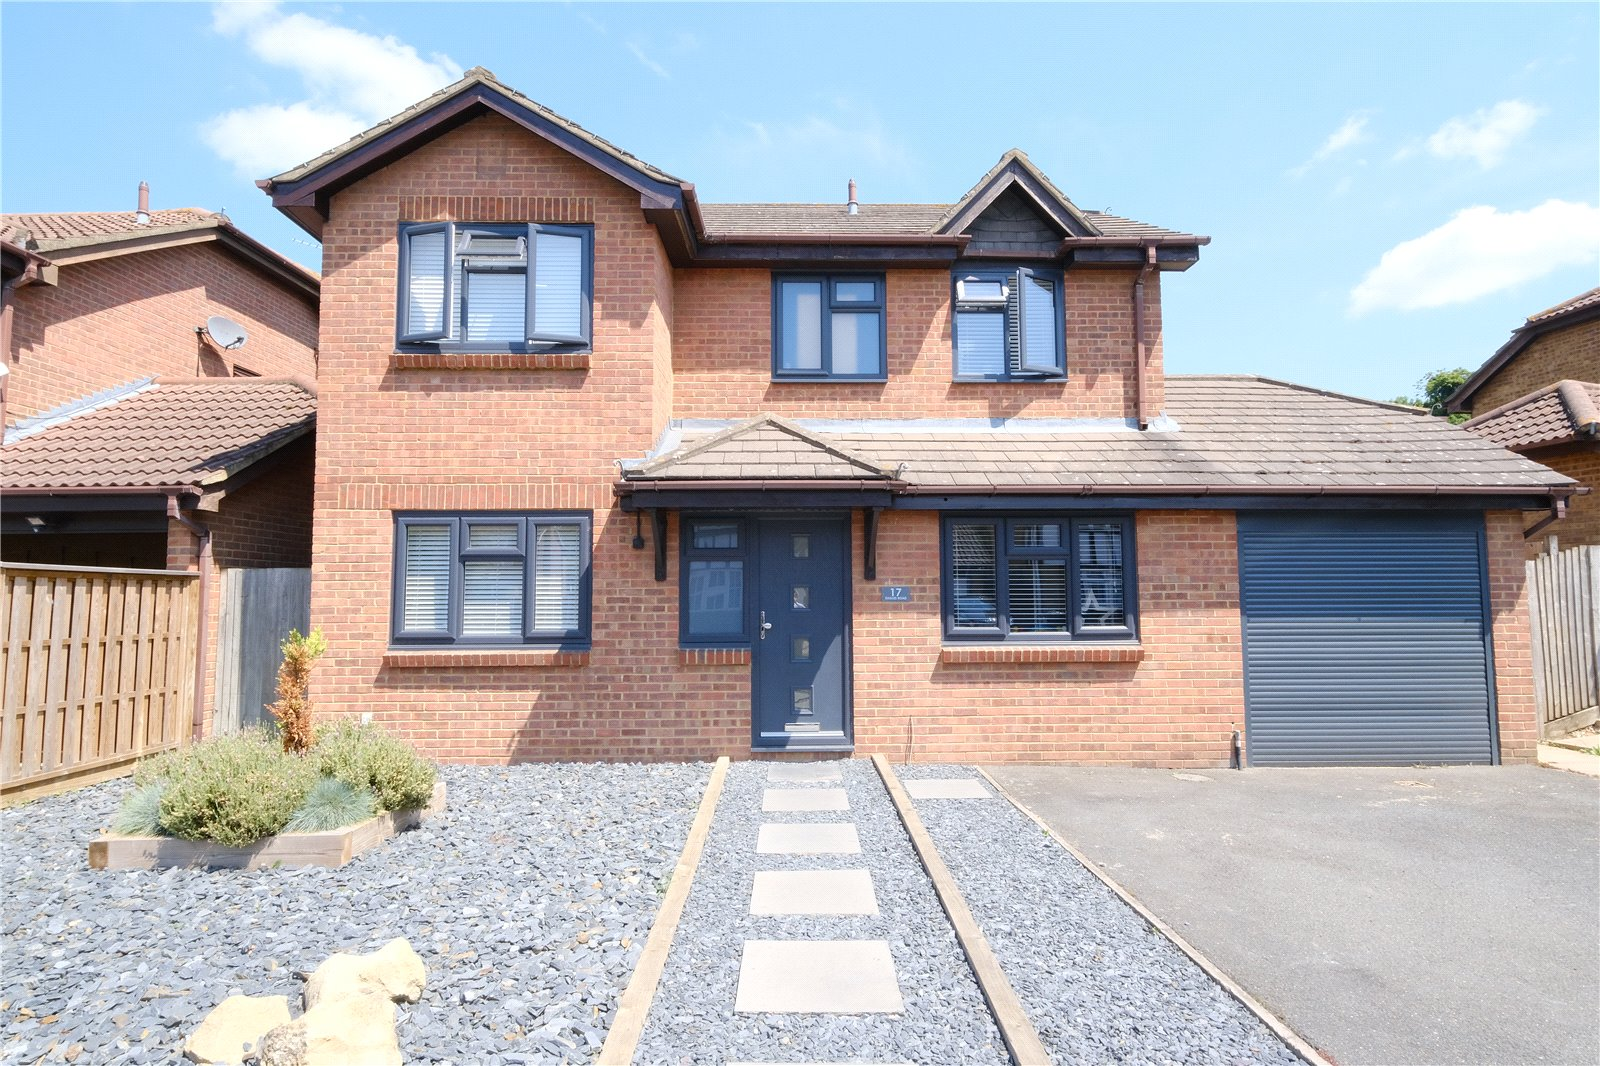 Eagles Road, Greenhithe, Kent, DA9